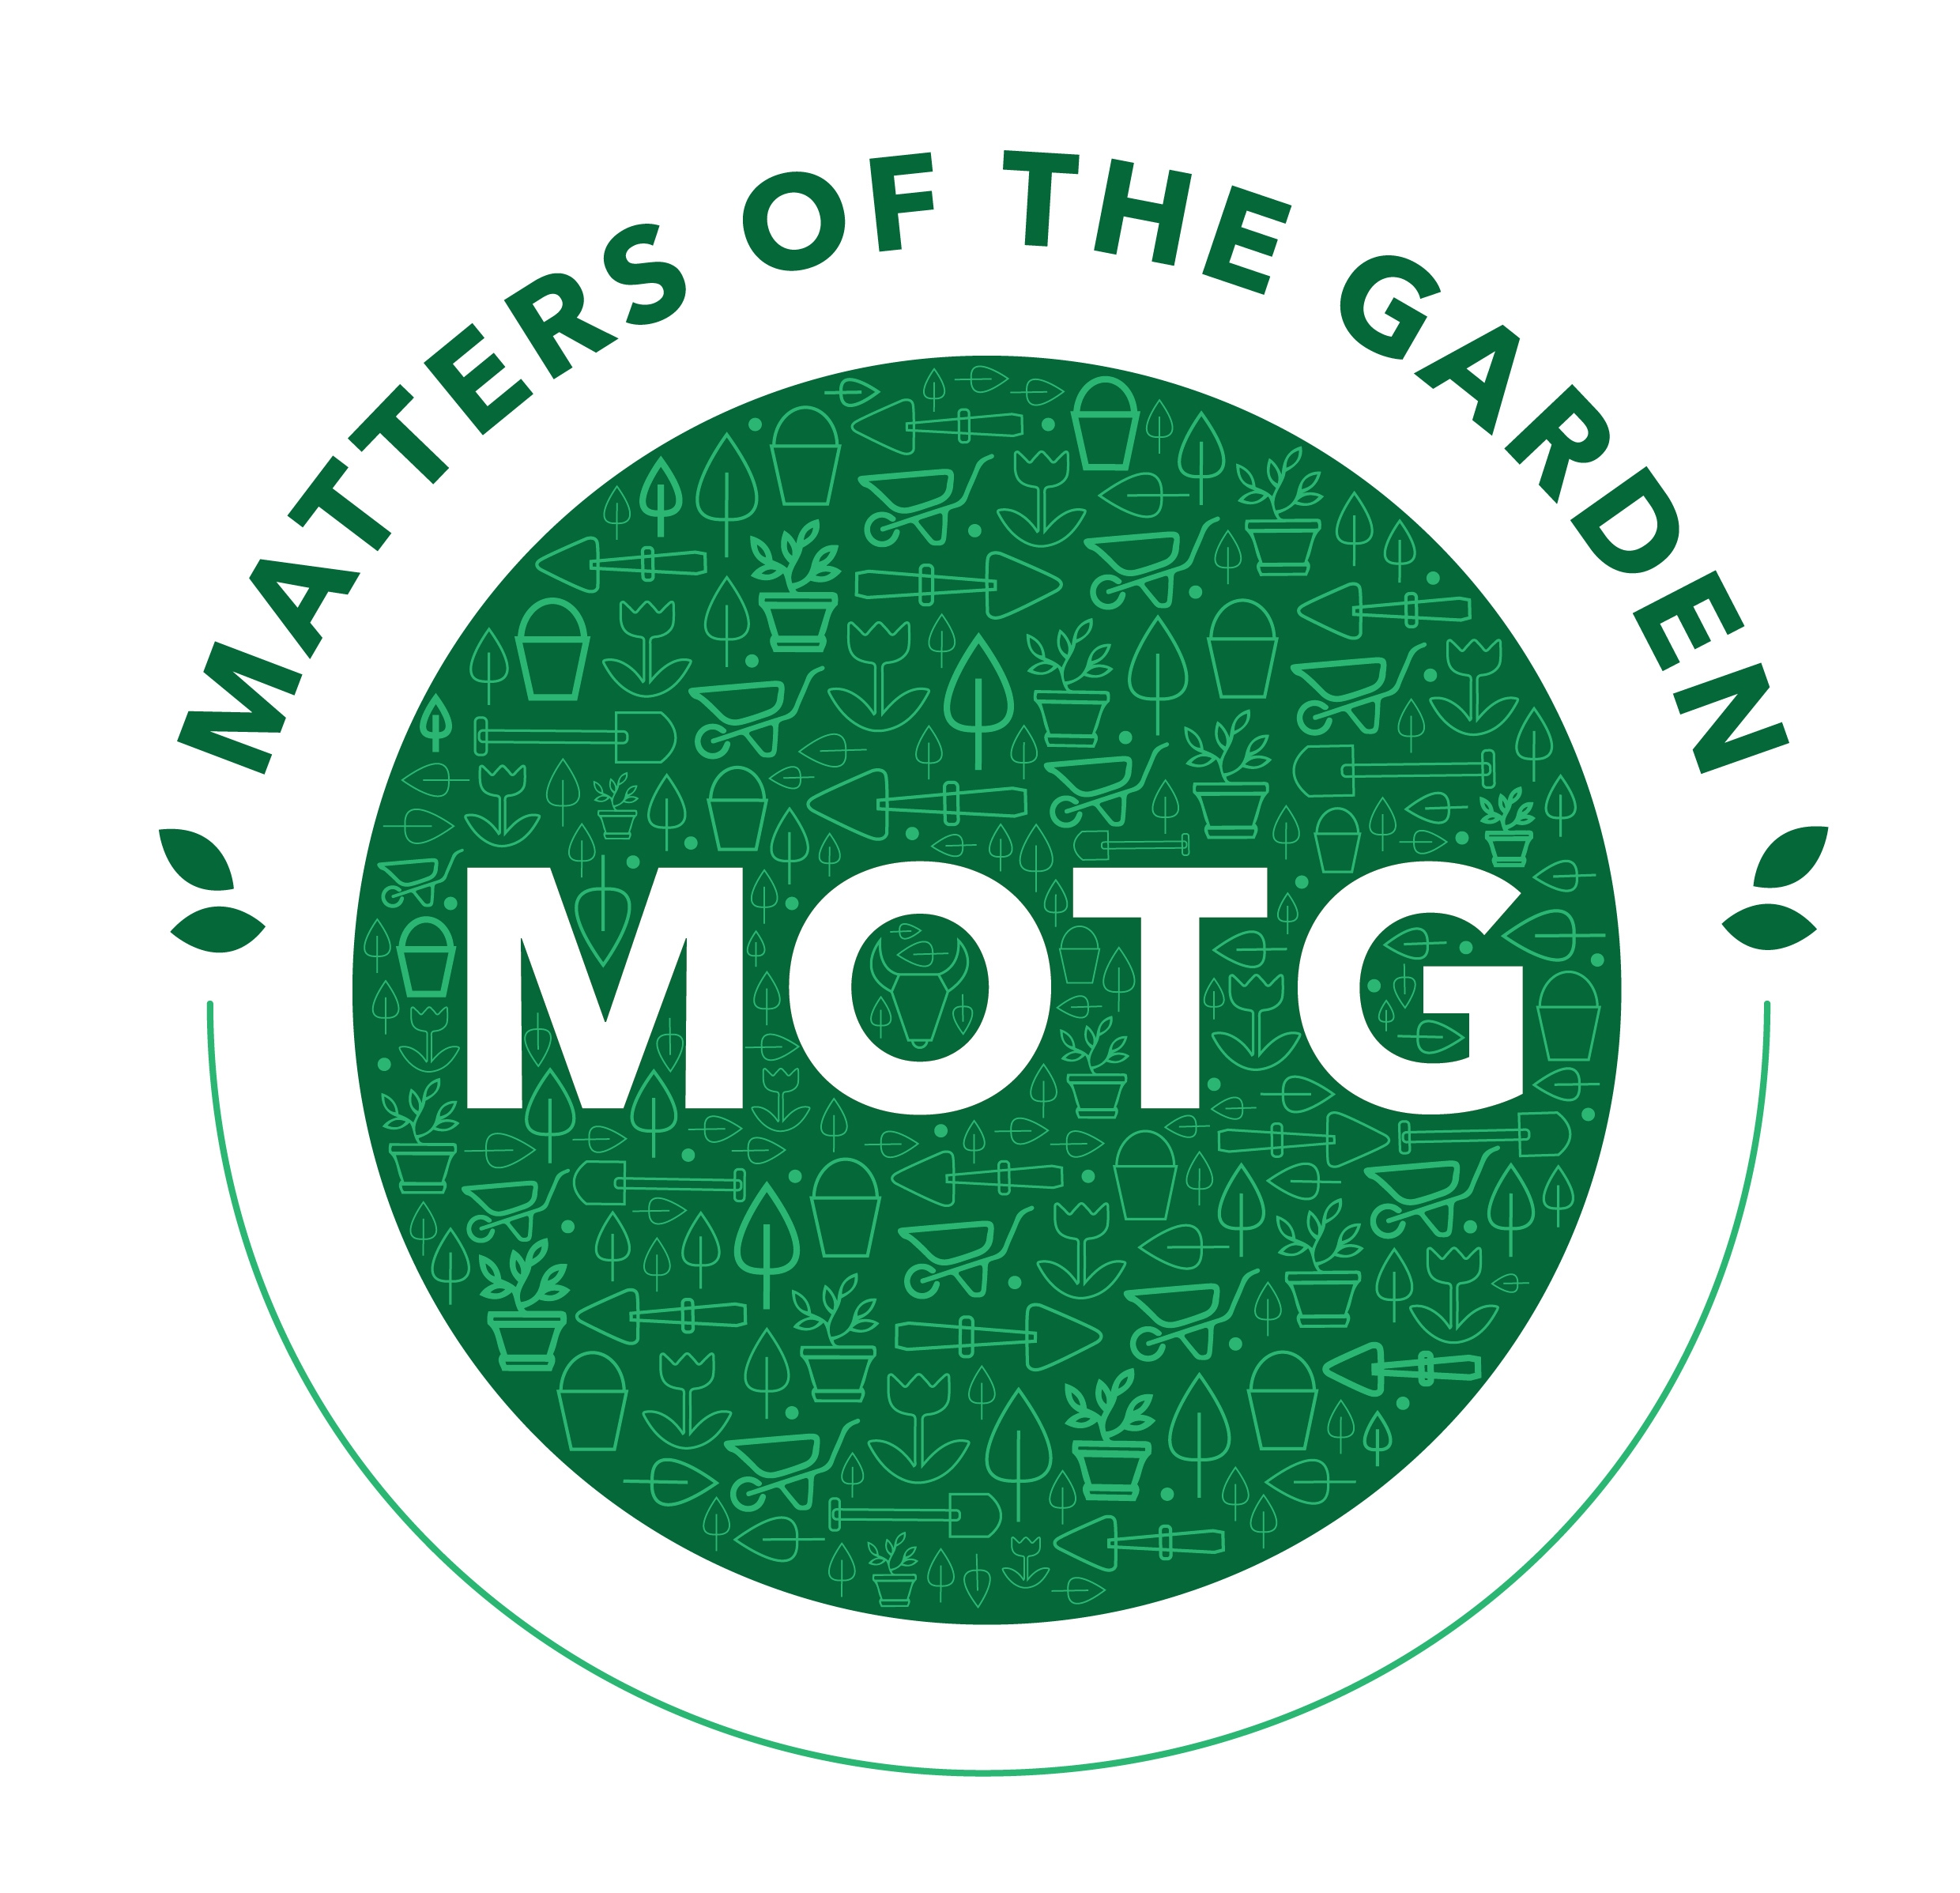 Matters of The Garden - For and From the garden we've got it